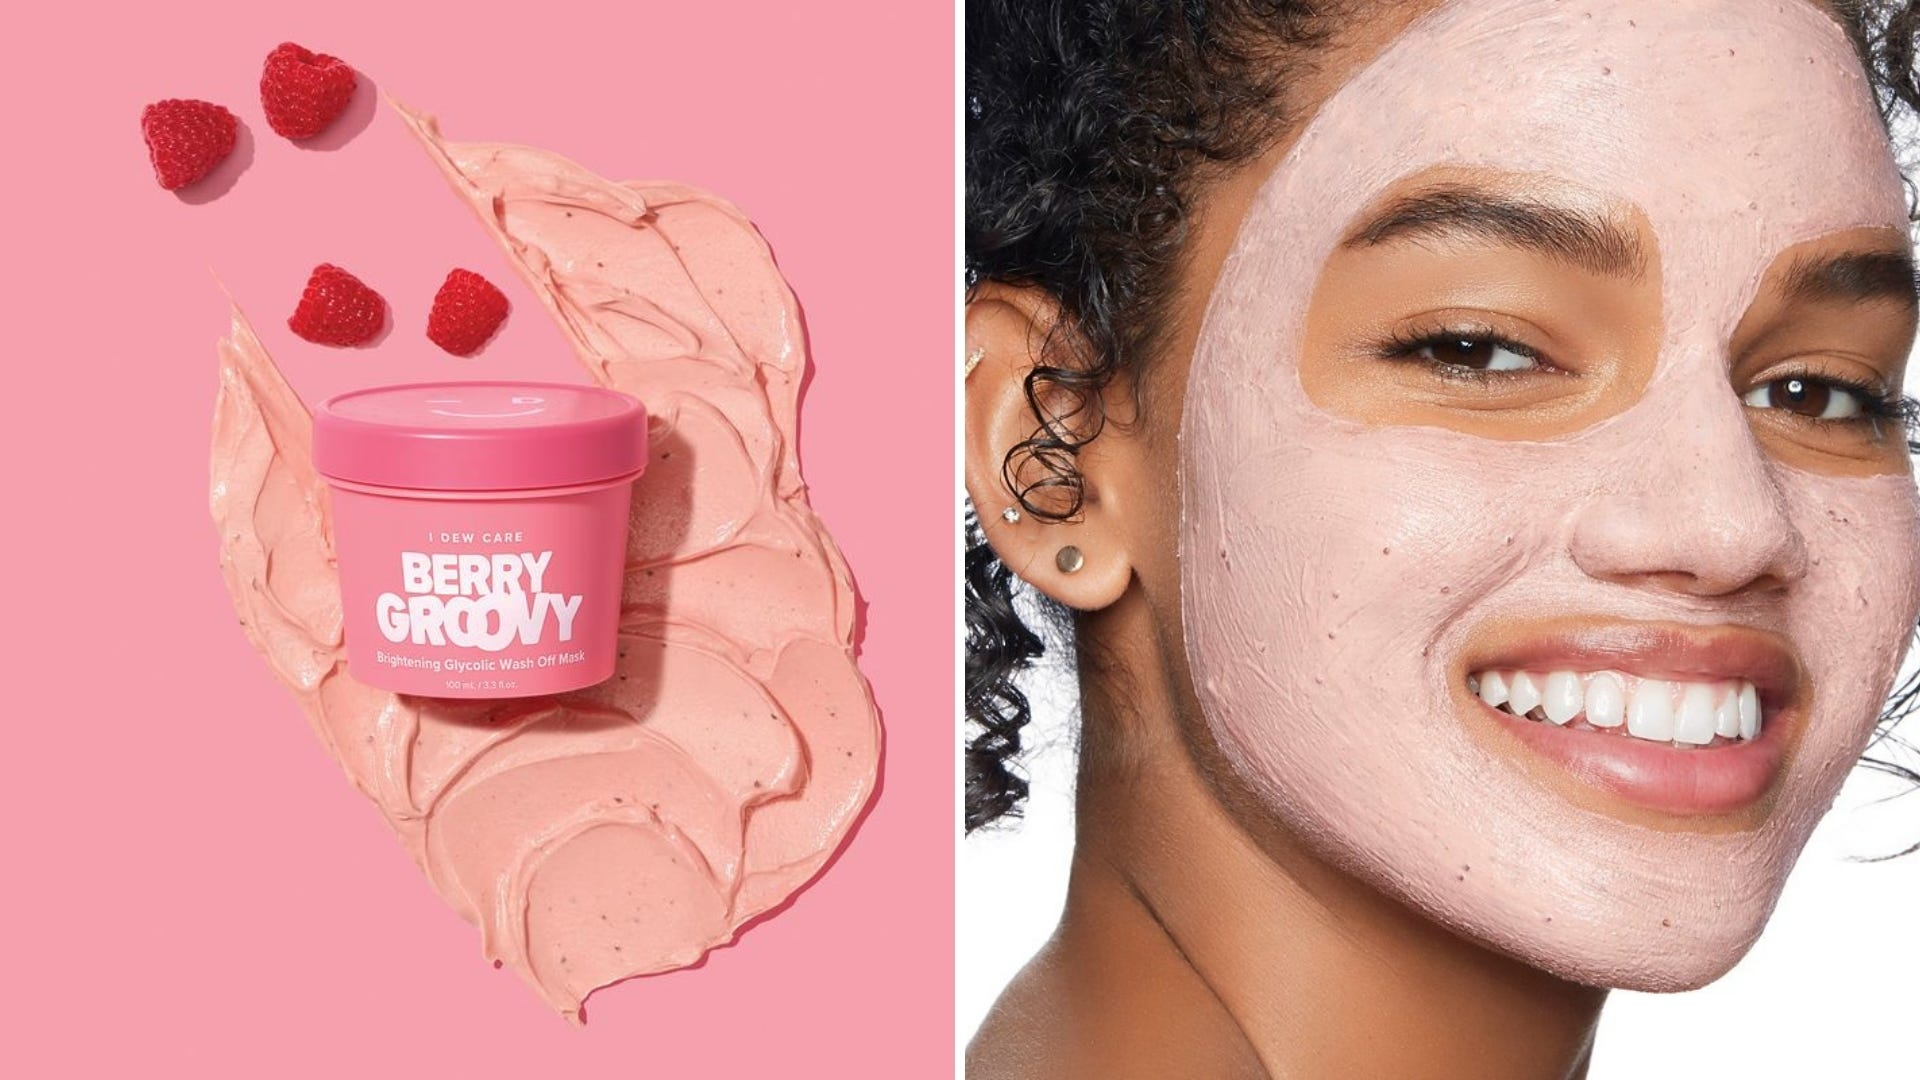 A face mask in a pink container sits on a pink background; a woman is smiling wearing a pink face mask.